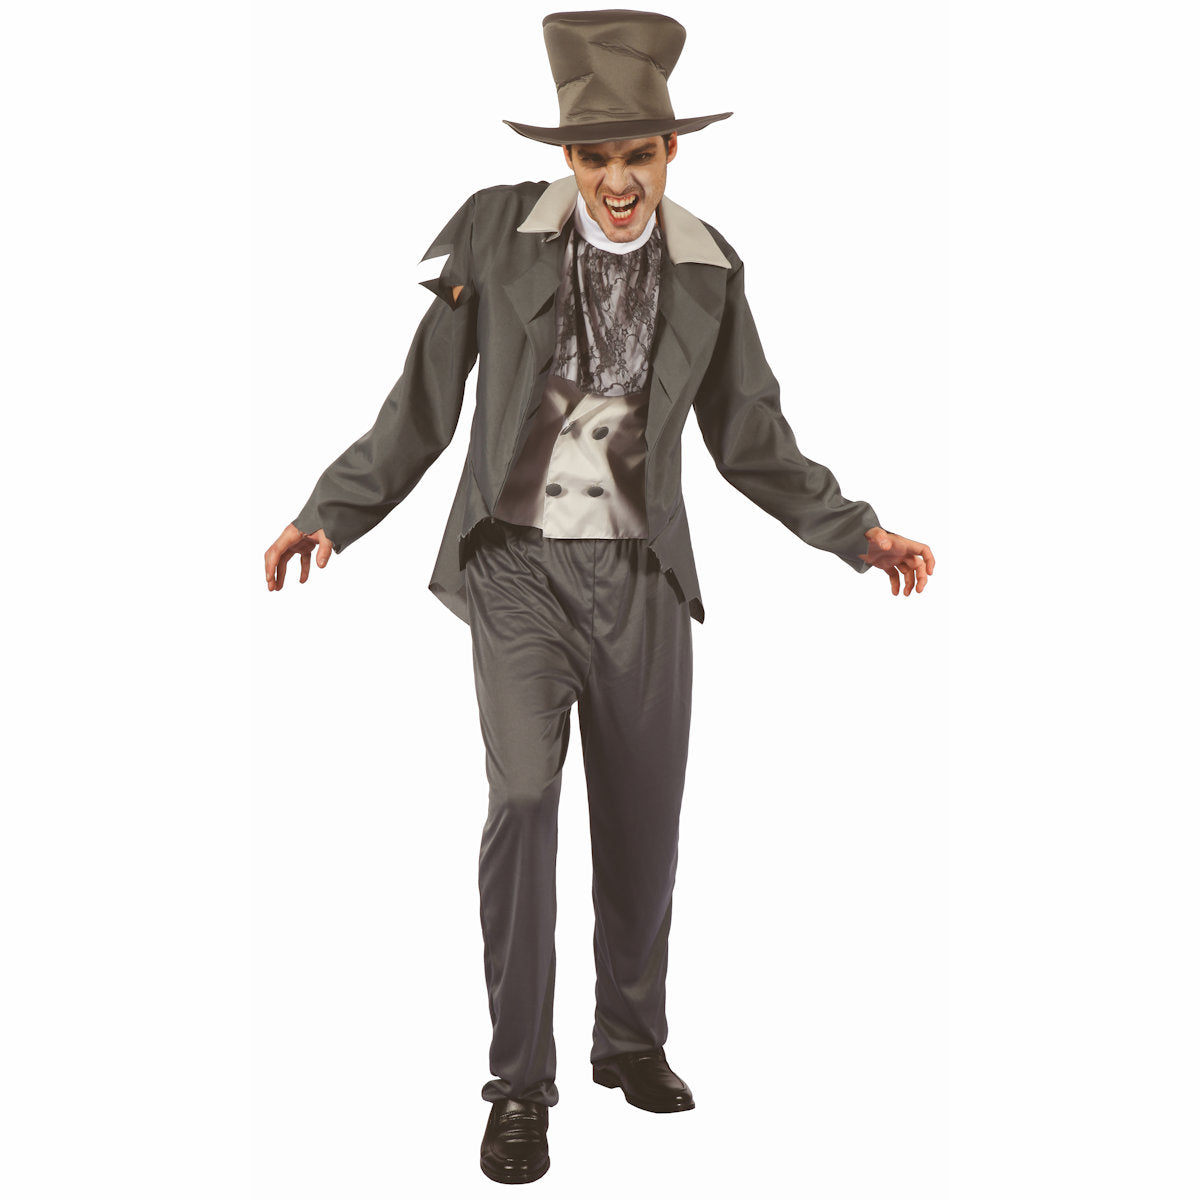 Walking Dead Zombie Gentleman Fancy Dress Costume with Top Hat